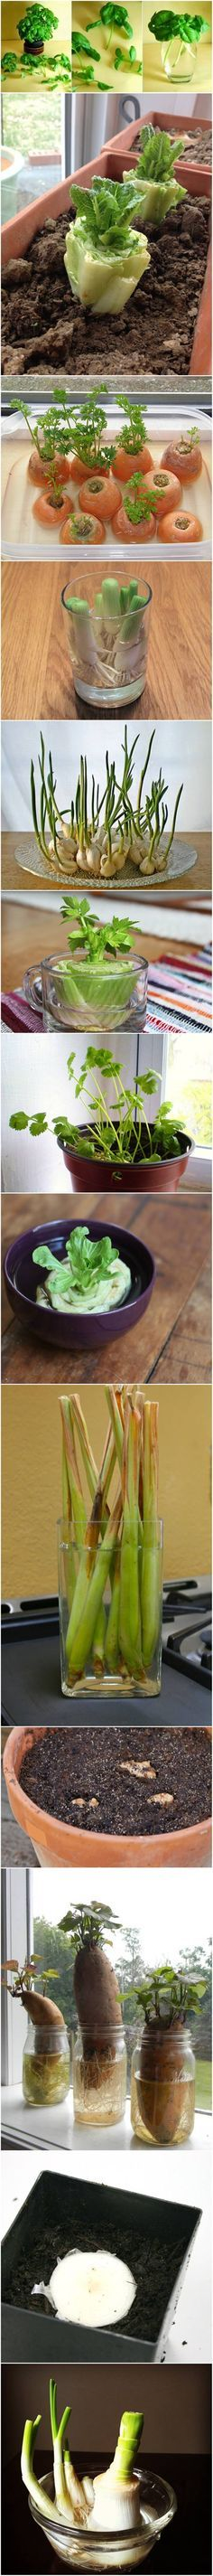 13 Vegetables That You Can Regrow Again And Again #gardening #regrow #recycle